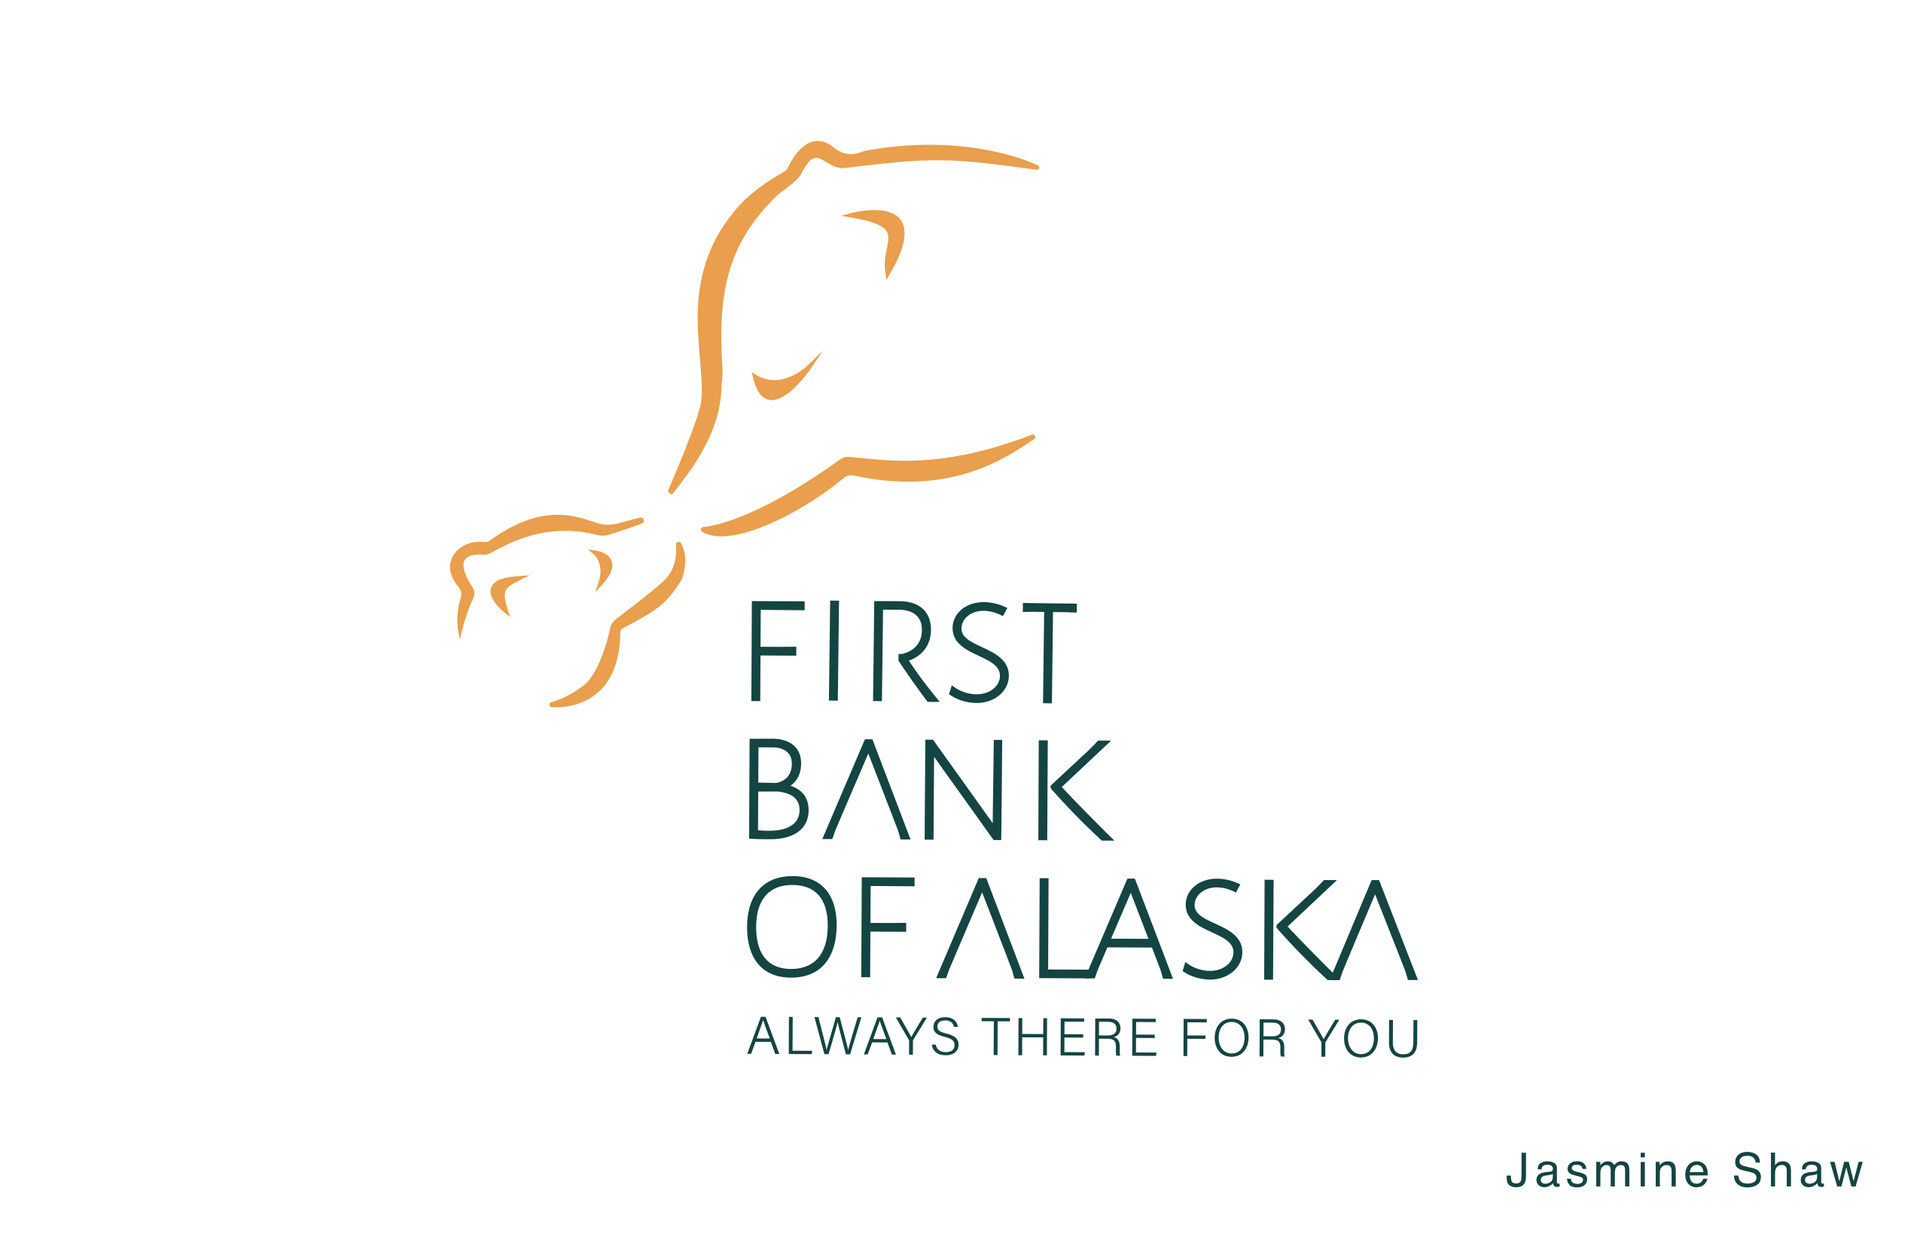 First Bank of Alaska